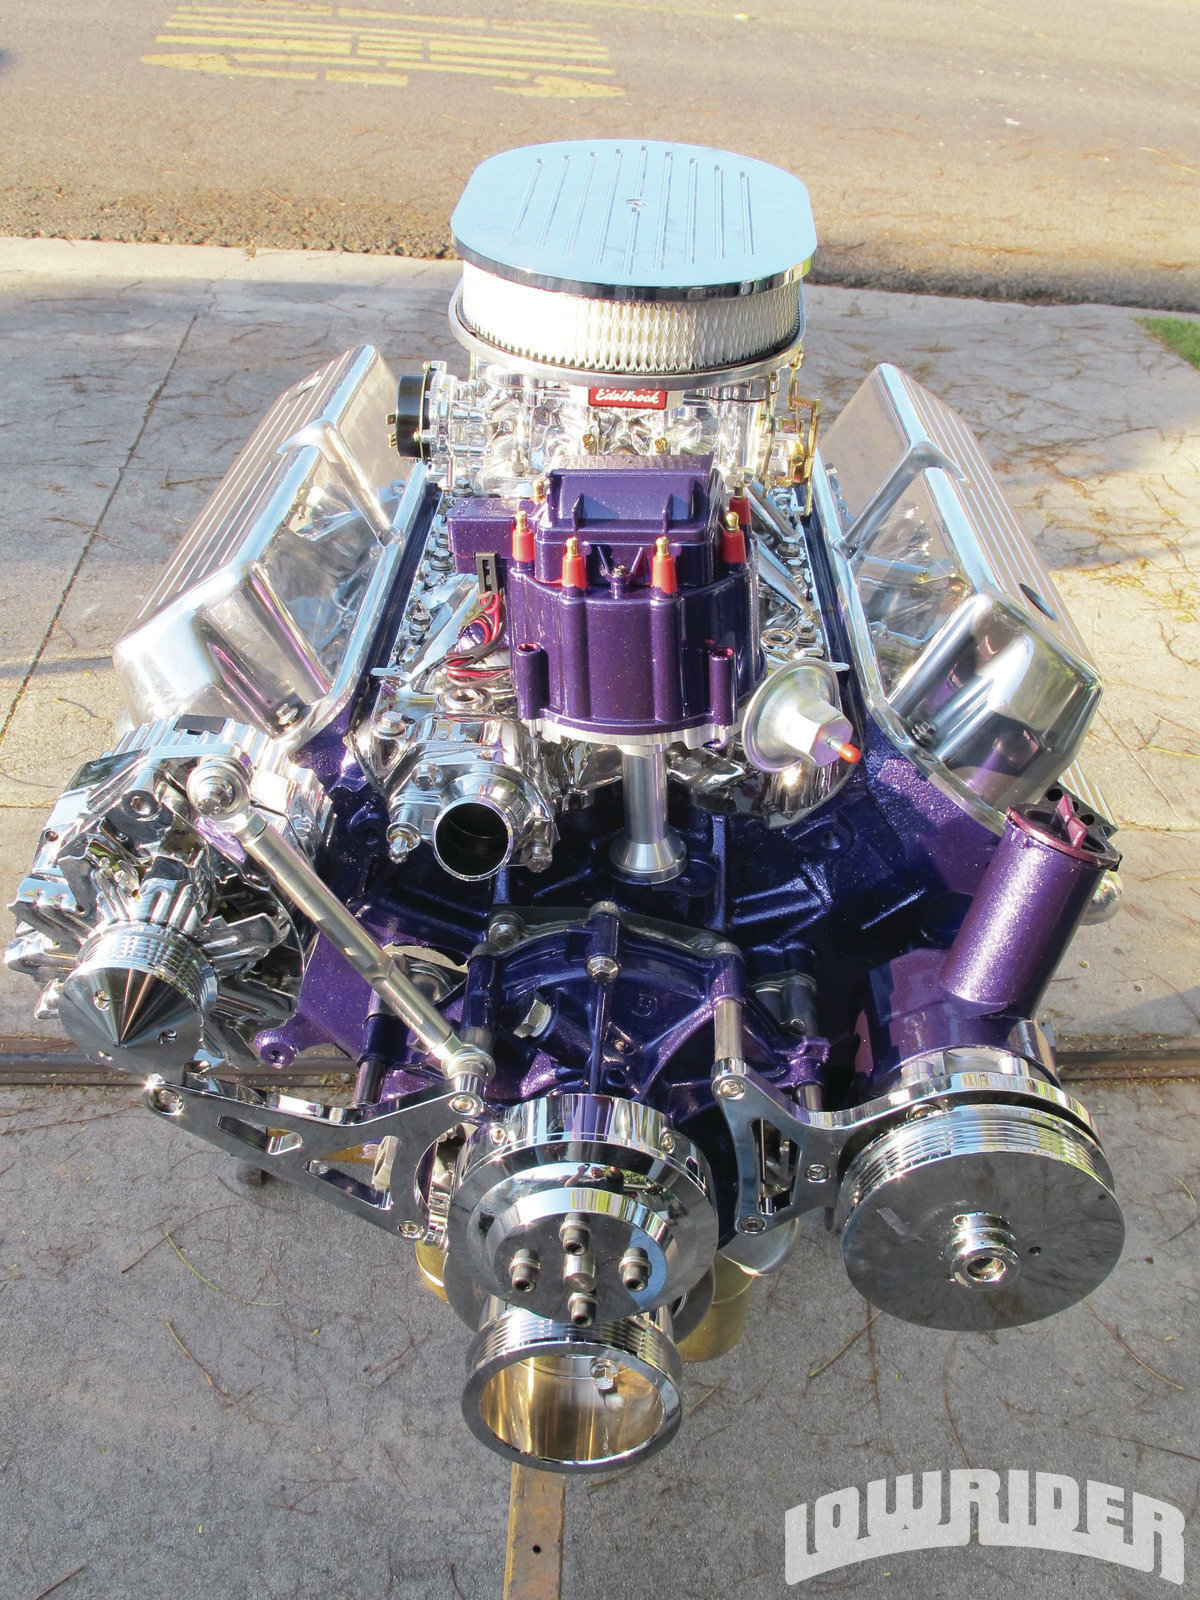 Impp Z Small Block Ford Windsor Build Completed